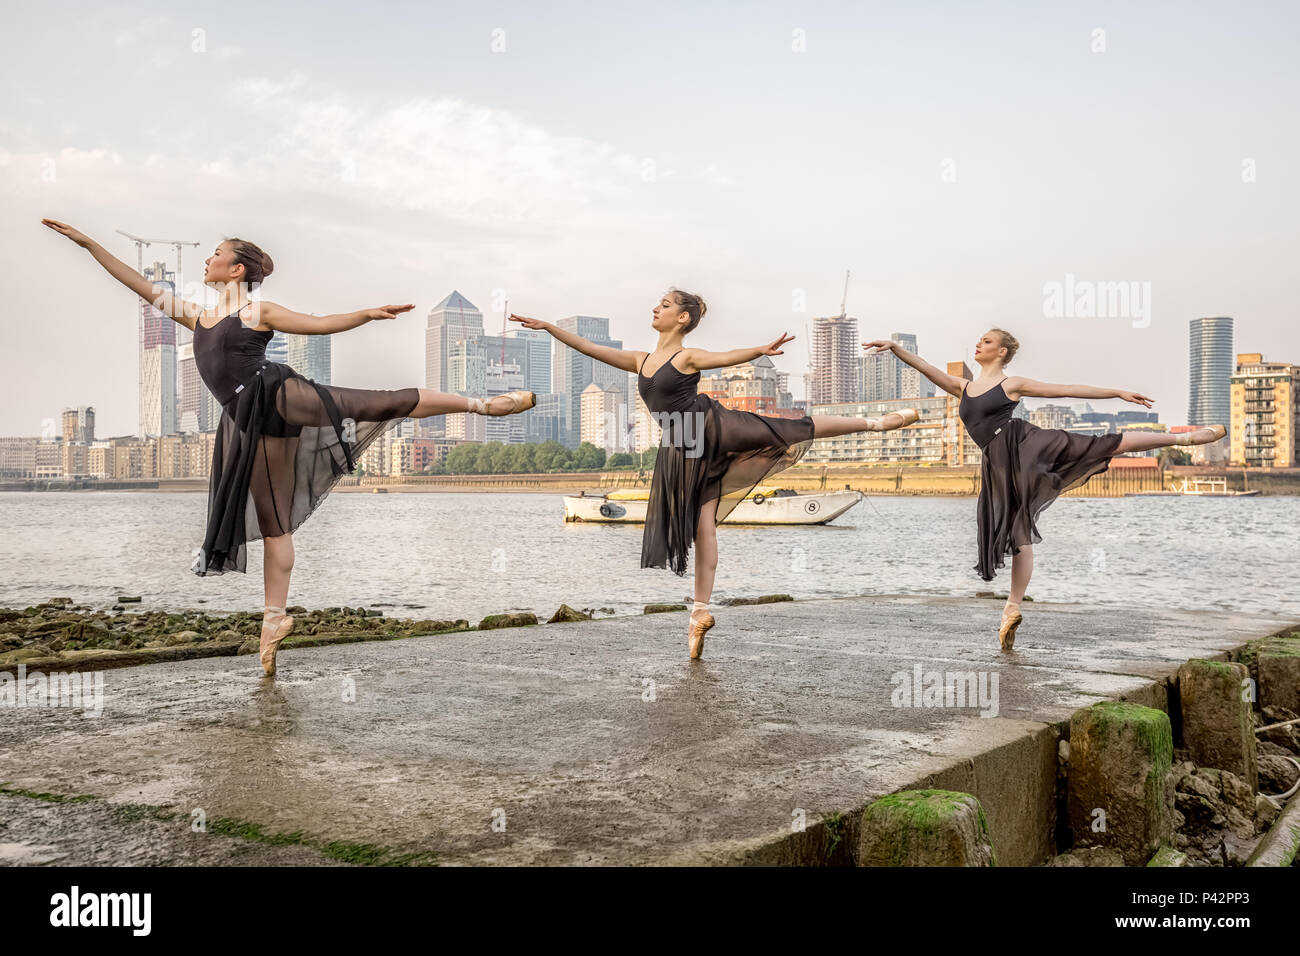 london-uk-20th-june-2018-dancers-from-se